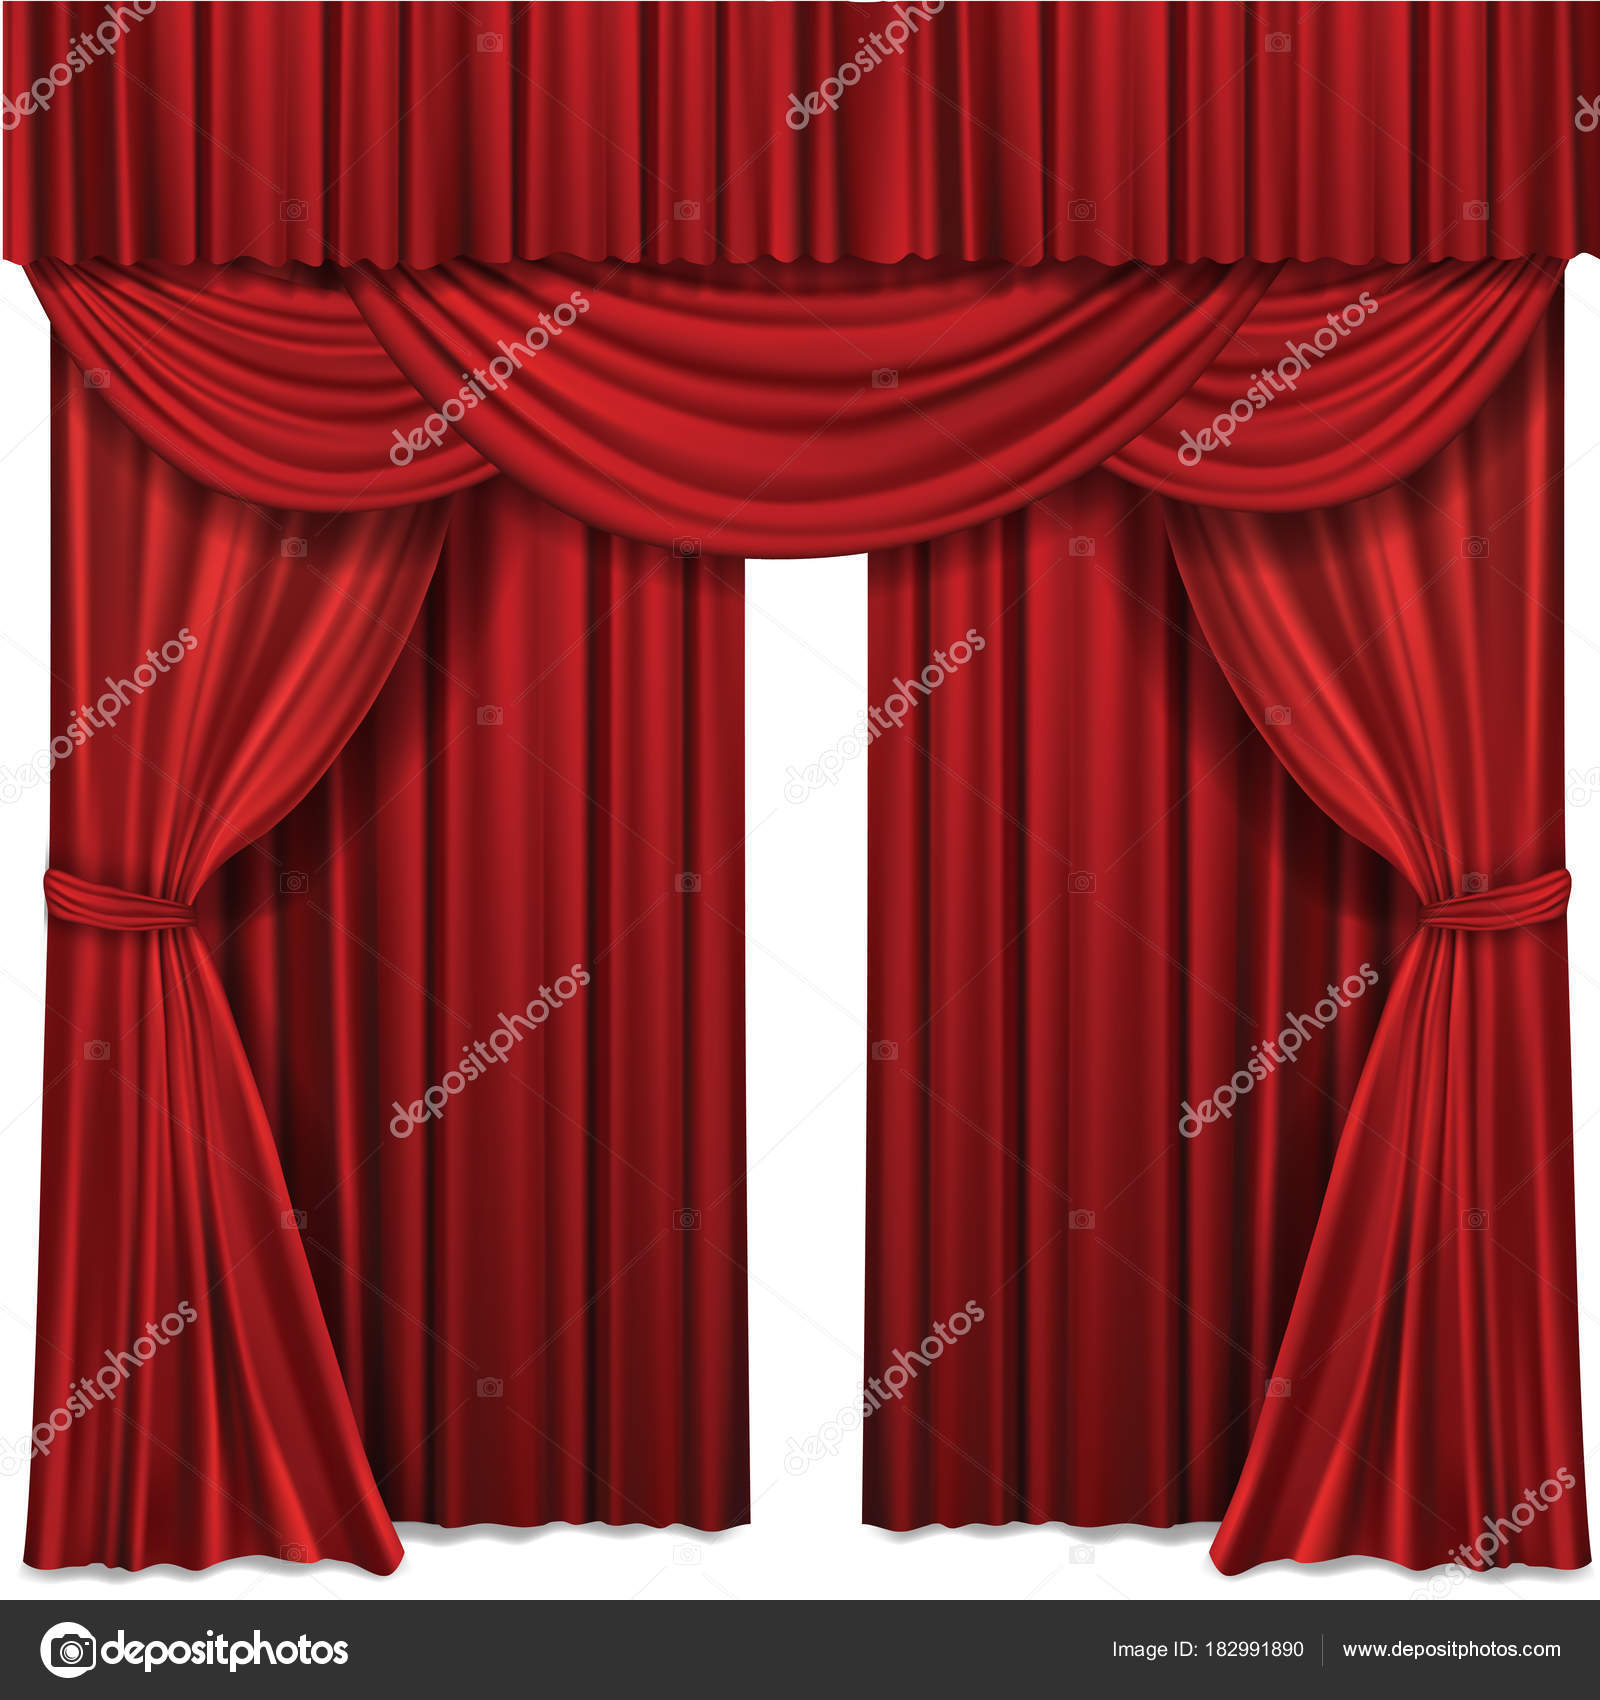 Red Stage Curtains Realistic Vector Illustration For Theater Or Opera Scene Performance Stock